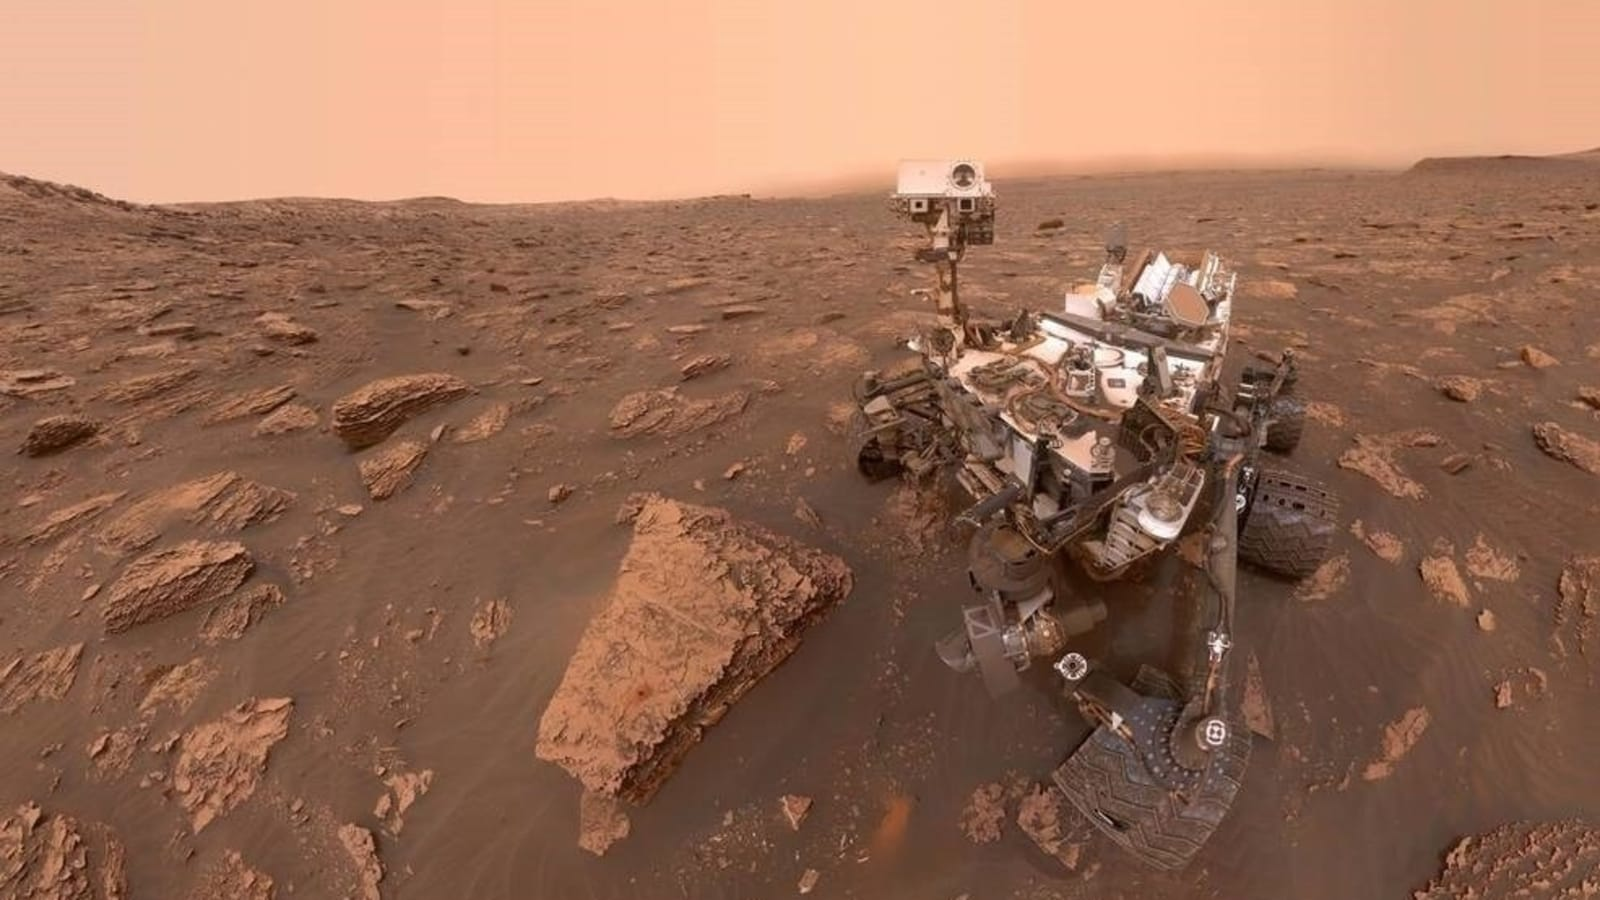 NASA will bring Mars soil to Earth, numerous secrets to be uncovered